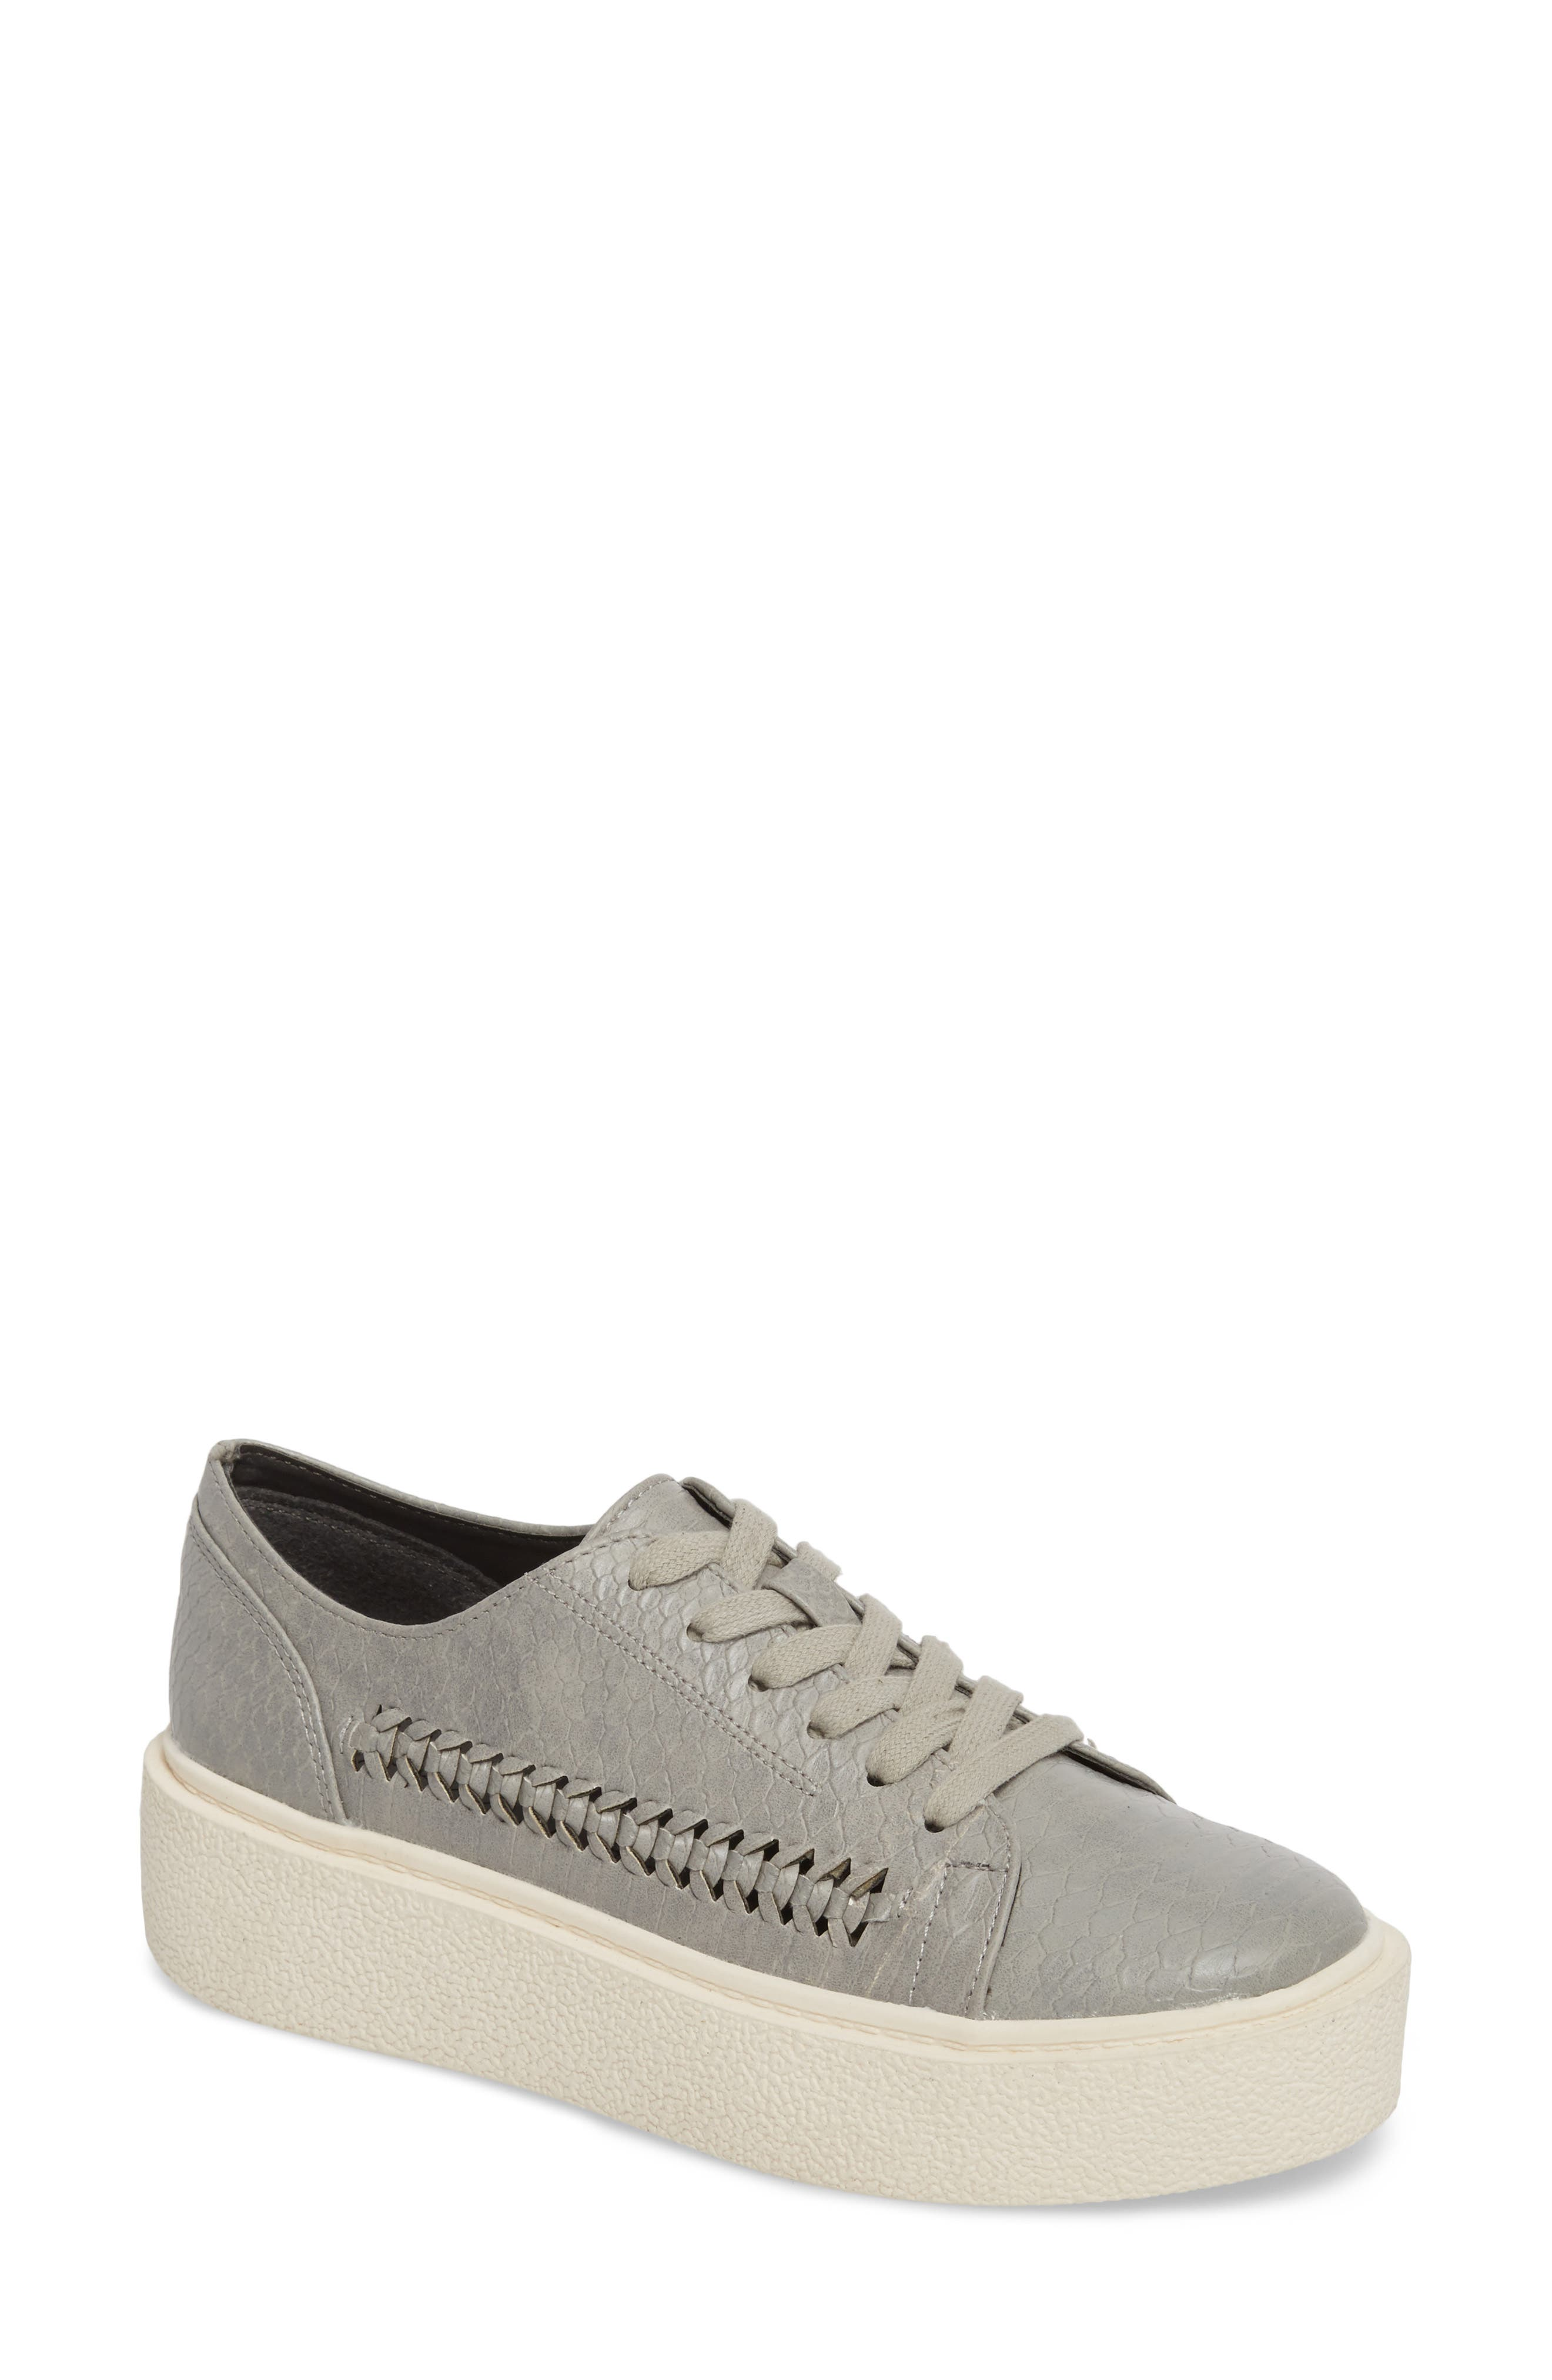 White Out Platform Sneaker,                             Main thumbnail 1, color,                             Grey Fabric